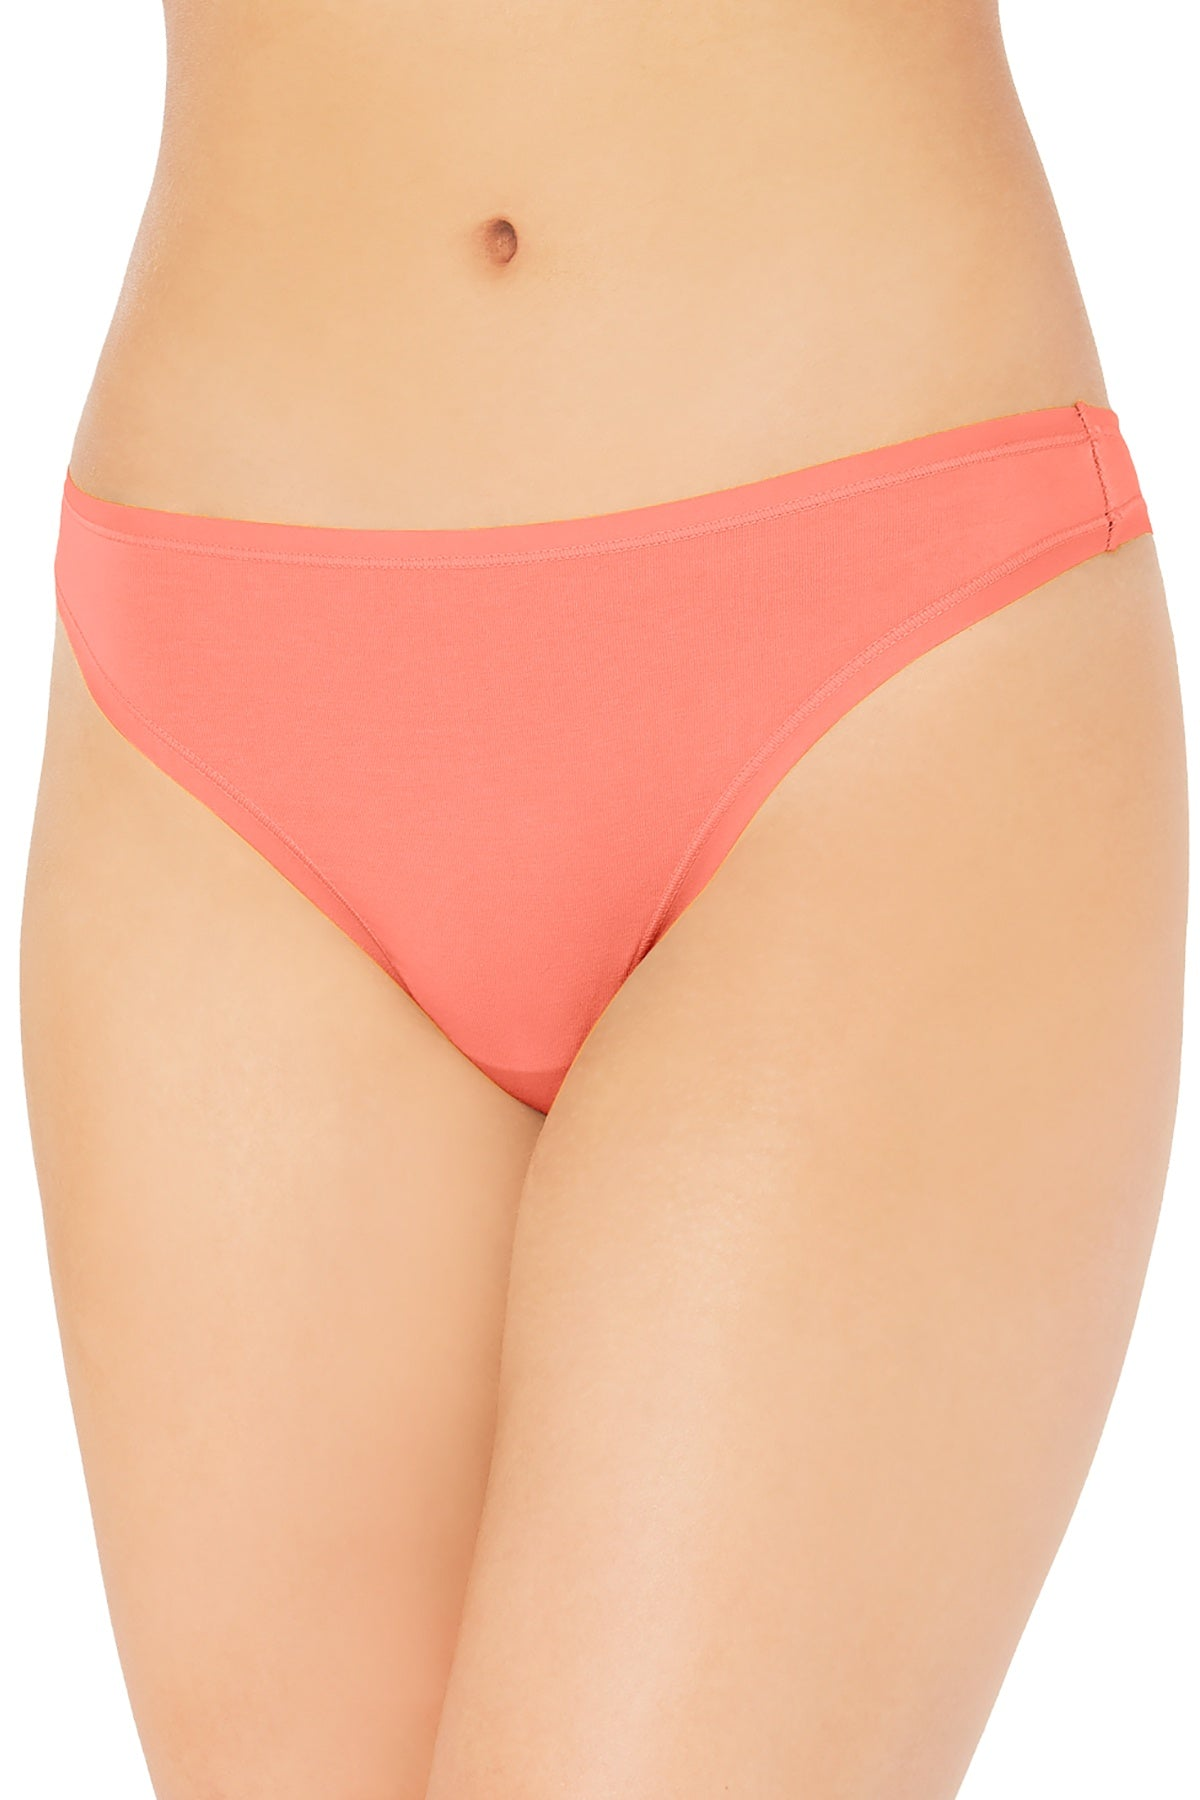 Charter Club Suprima Cotton Thong in Coral Lining